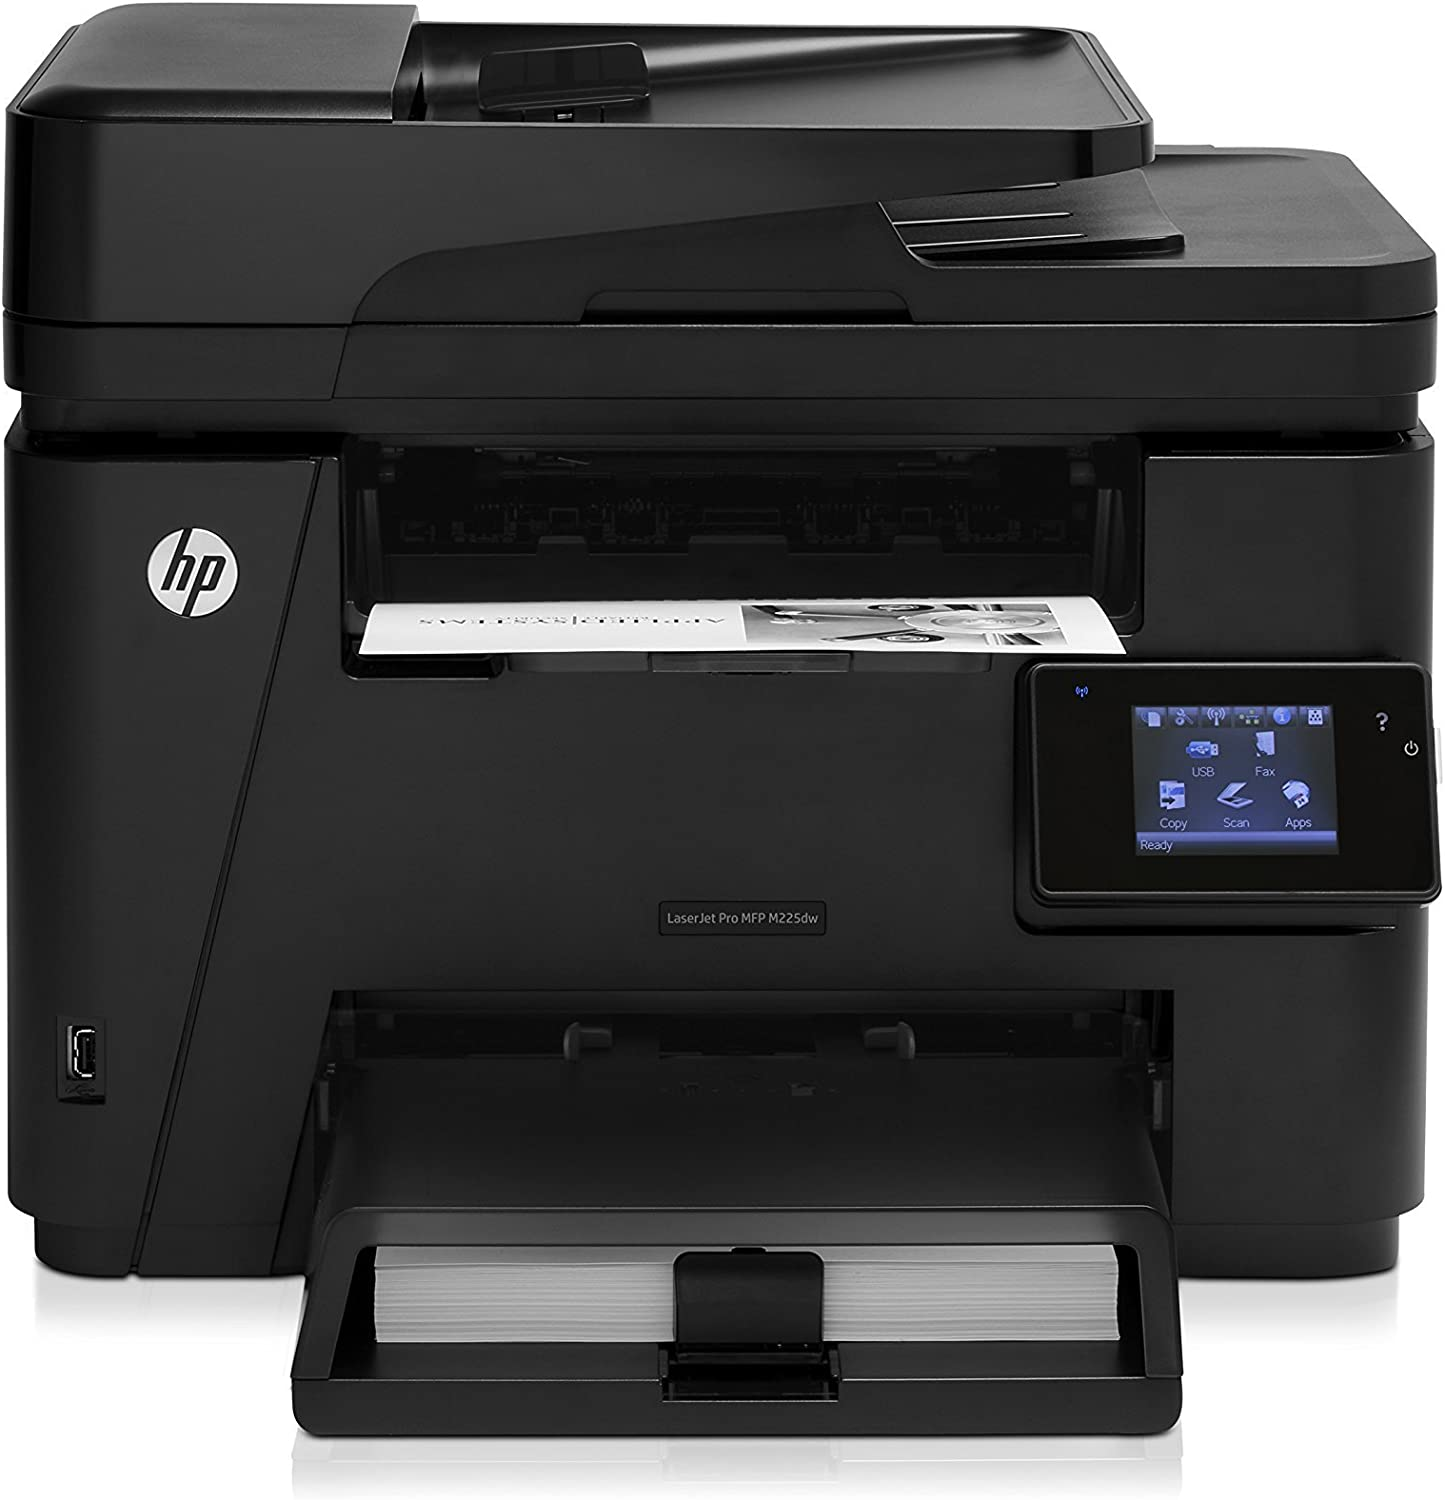 HP Laserjet Pro M225dw Wireless Monochrome Printer with Scanner, Copier and Fax, Amazon Dash Replenishment Ready (CF485A) (Renewed)